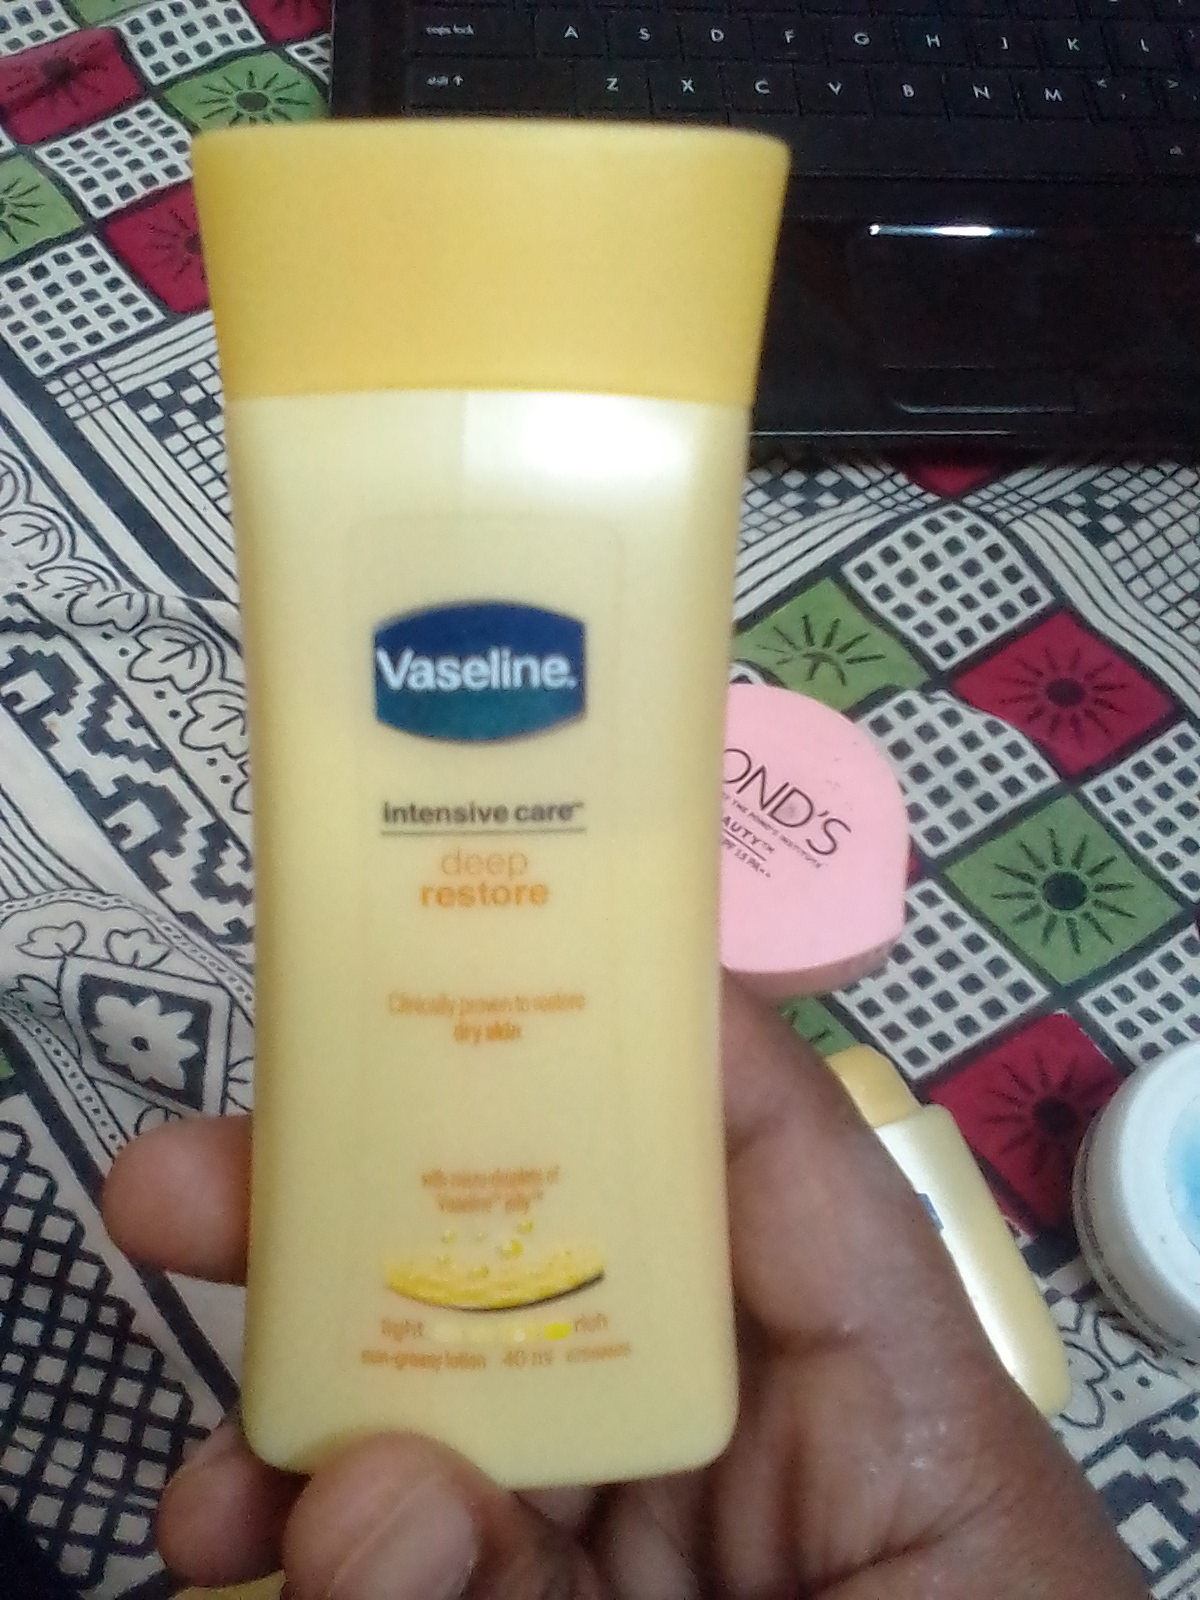 Vaseline Intensive Care Deep Restore Body Lotion-Best intensive care lotion-By umadevi-2